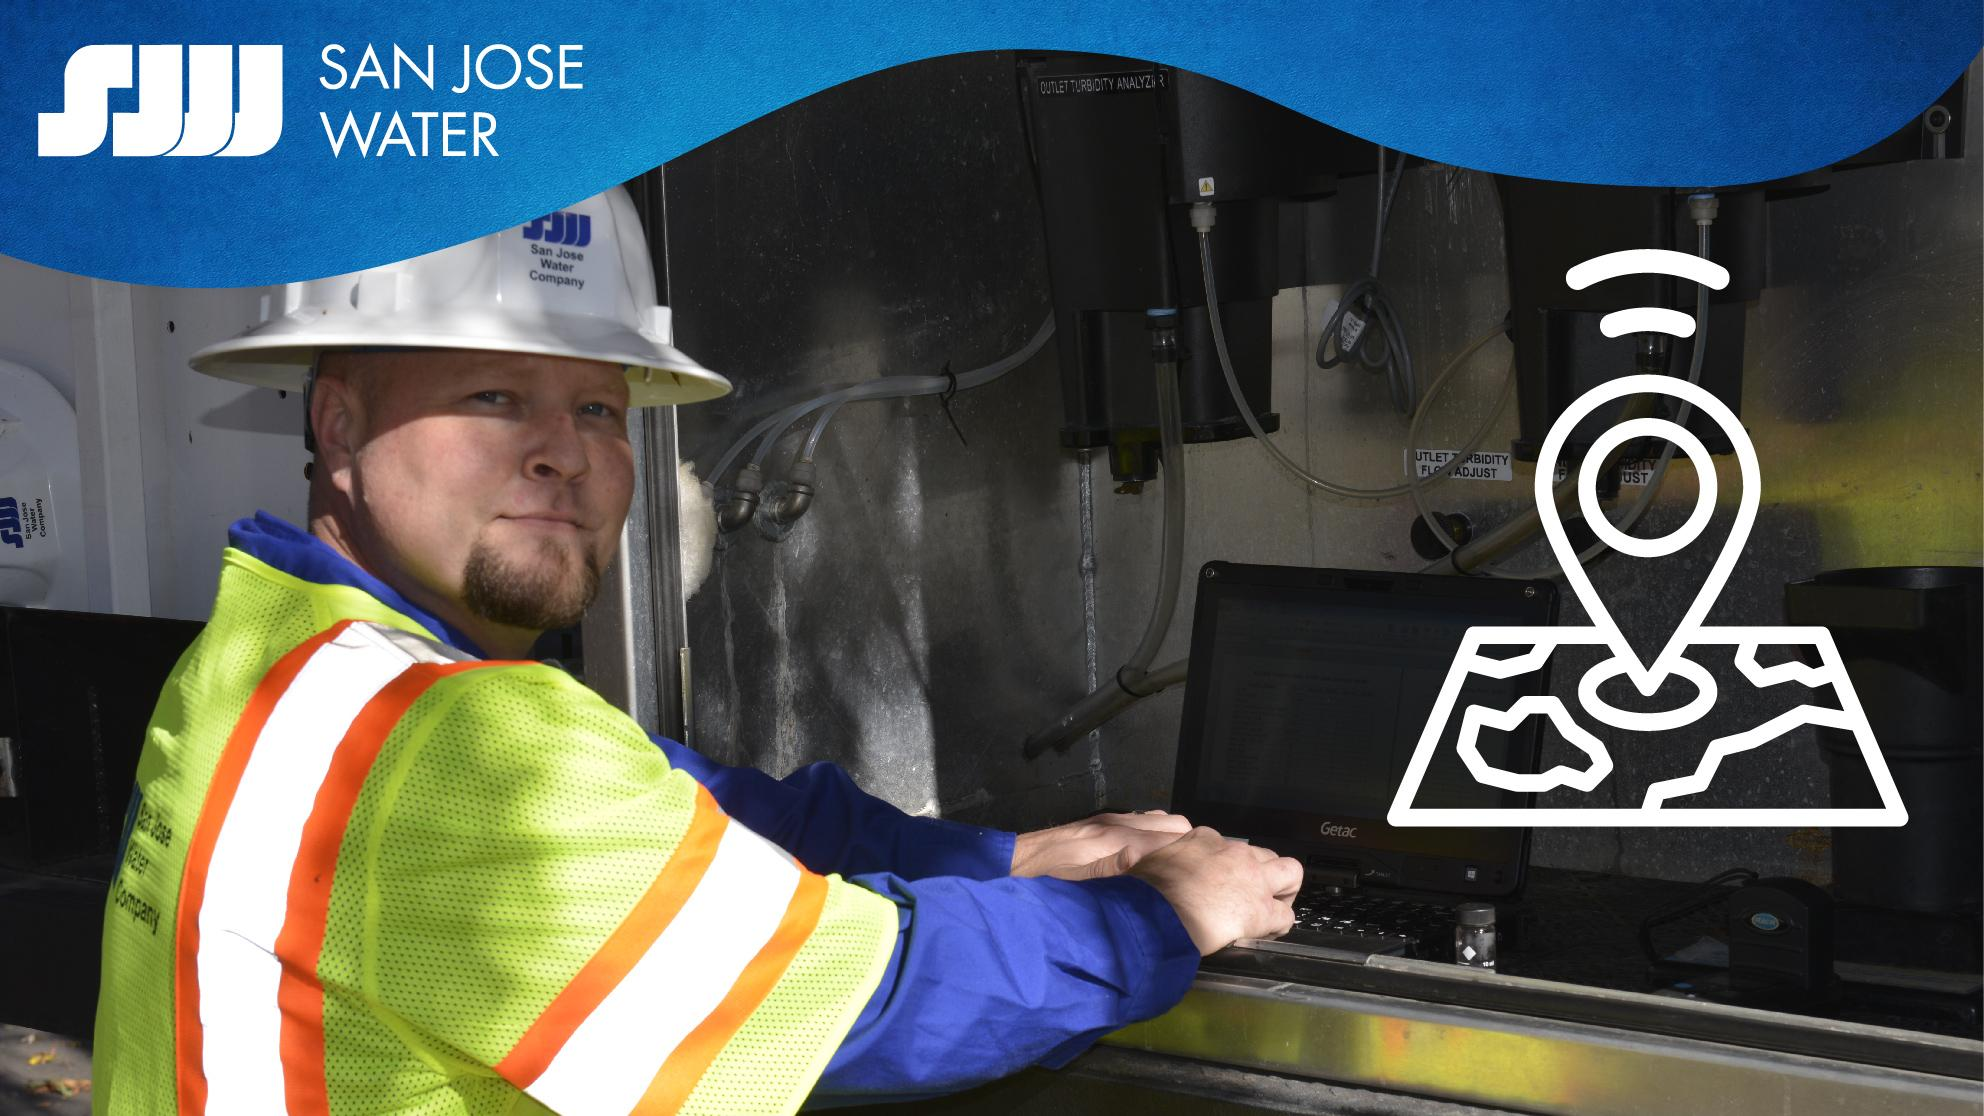 San Jose Water field employee with gps icon